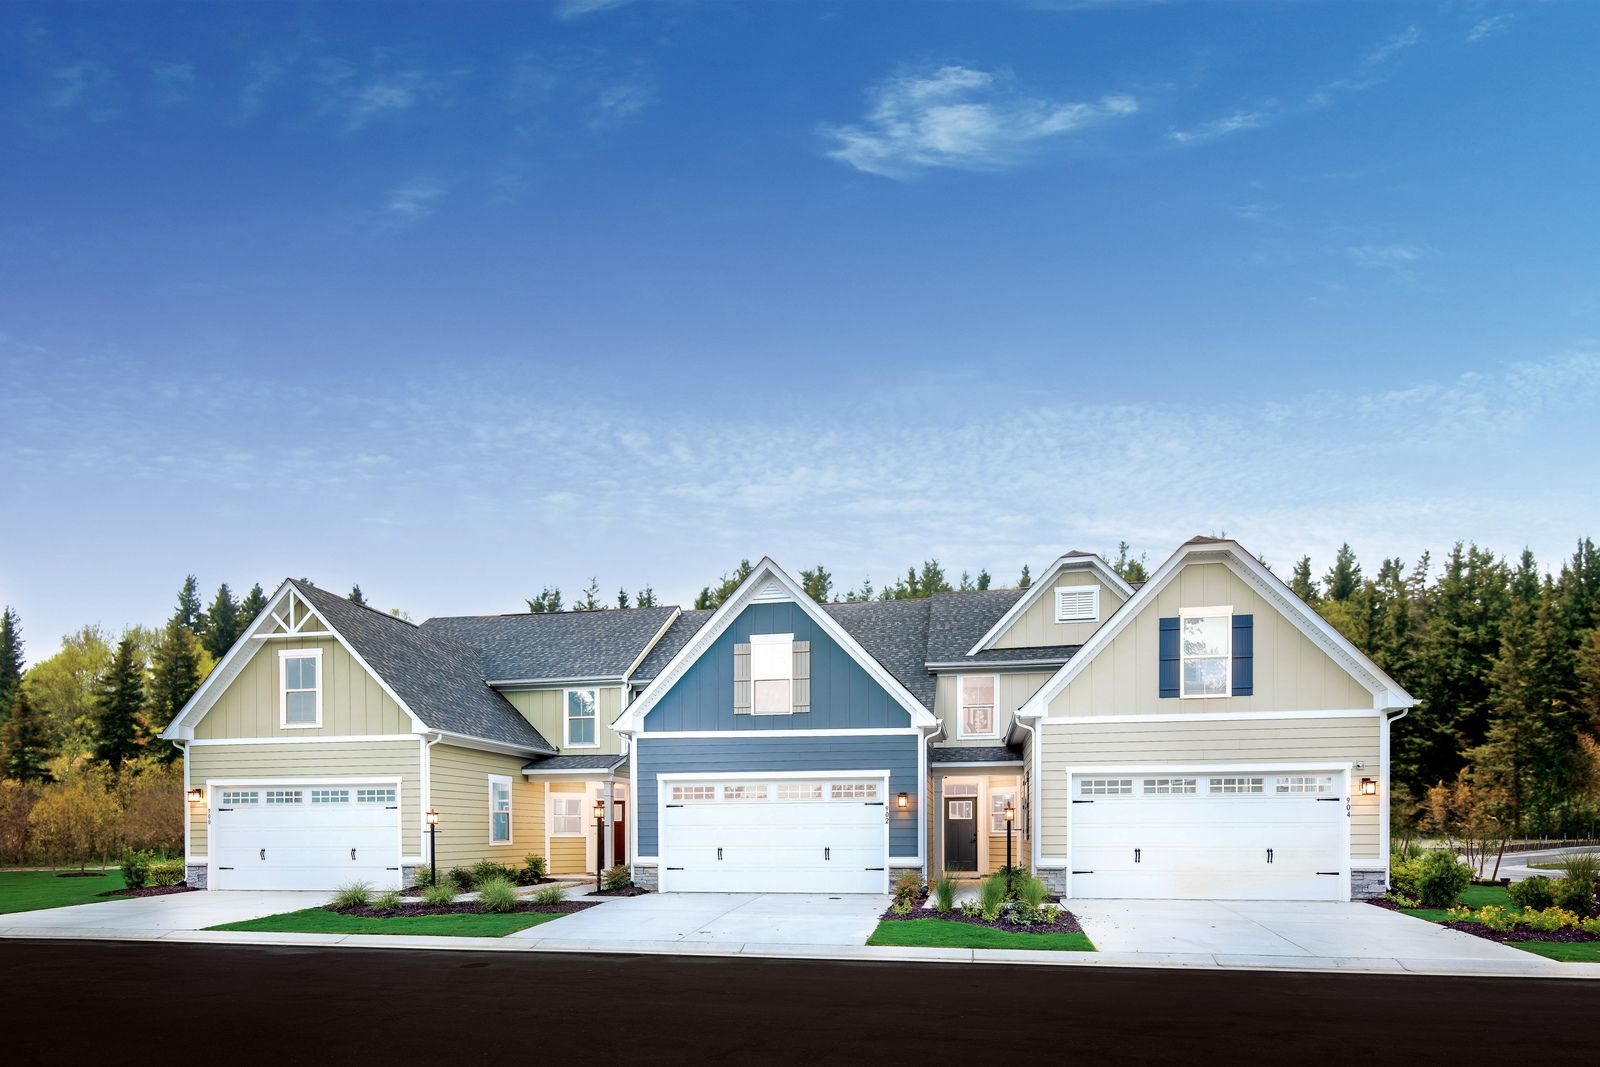 Welcome home to Legacy Park:The best located traditional & 1st floor living townhomes in Washington County. Where convenience truly matters, just off Rt. 19 & minutes to I-79.Click hereto schedule an appointment.